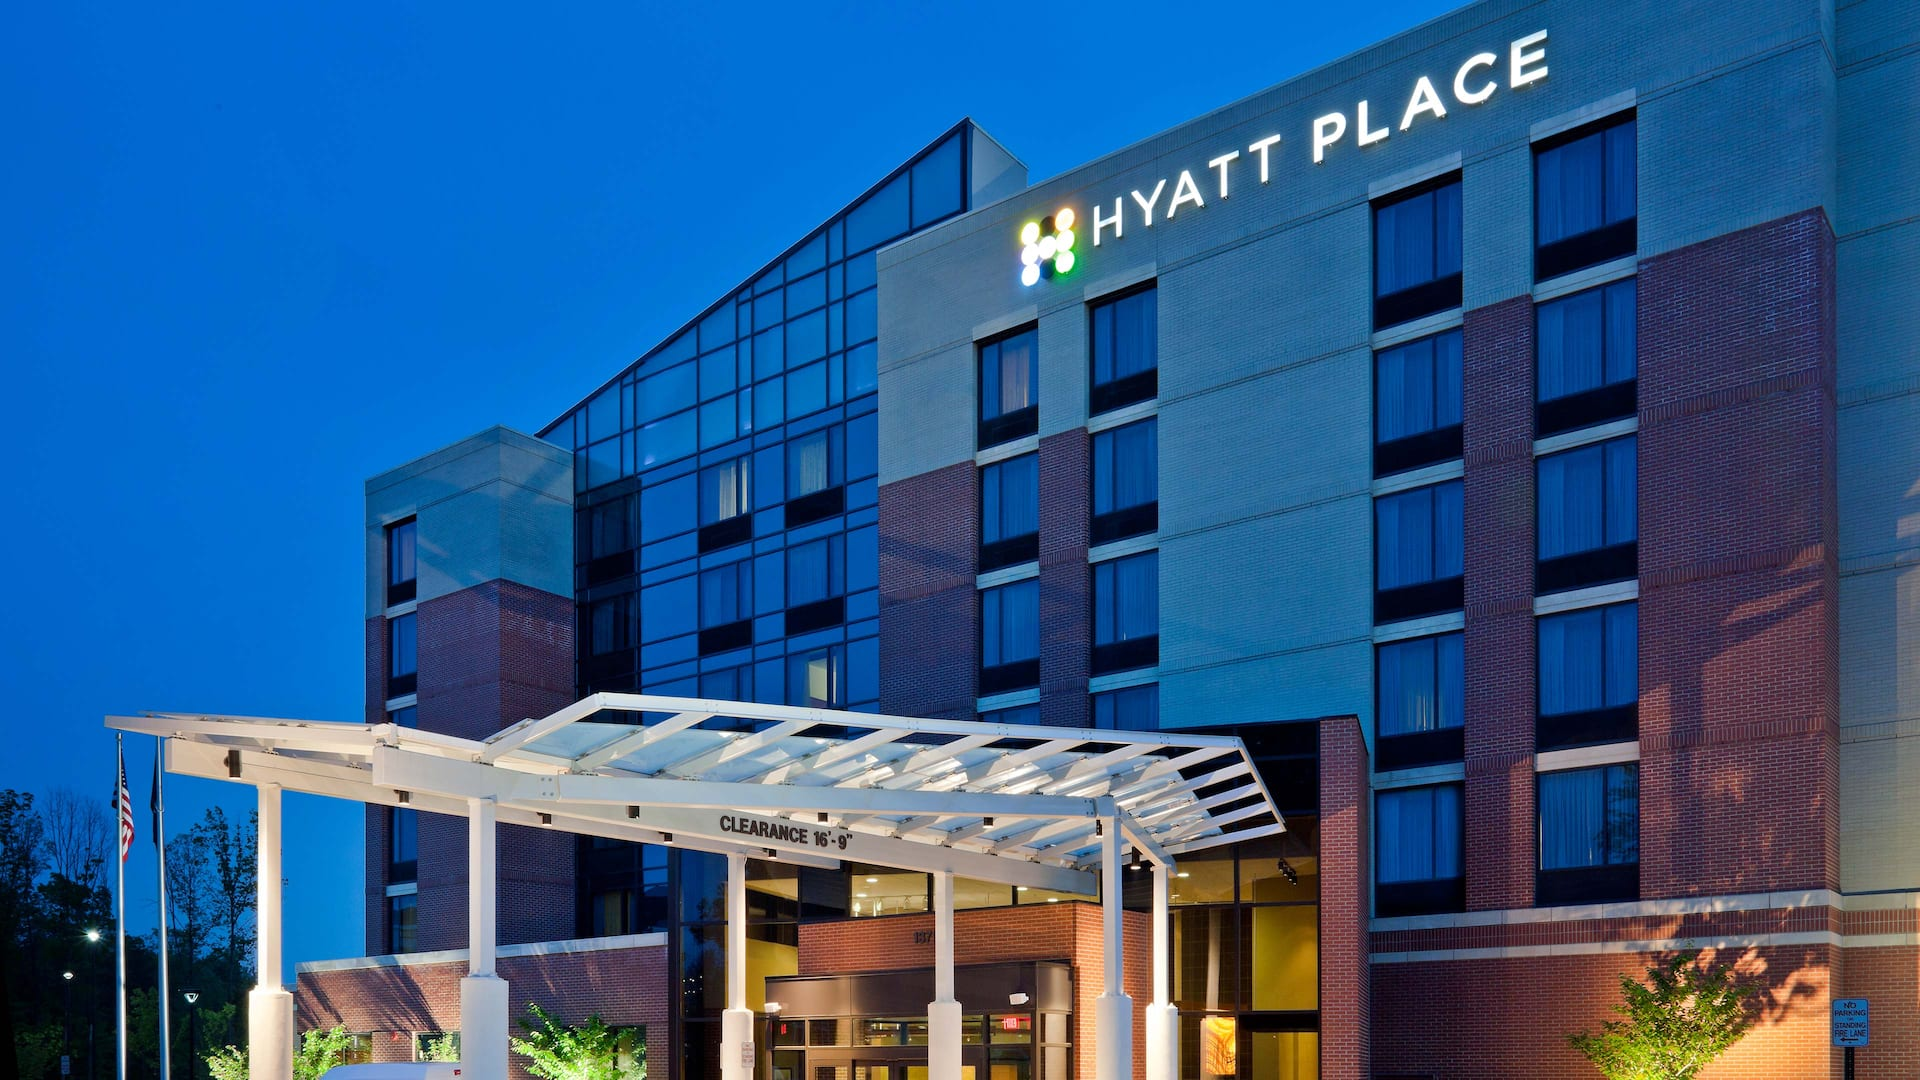 Hyatt Place Herndon / Dulles Airport-East exterior, evening view of entrance